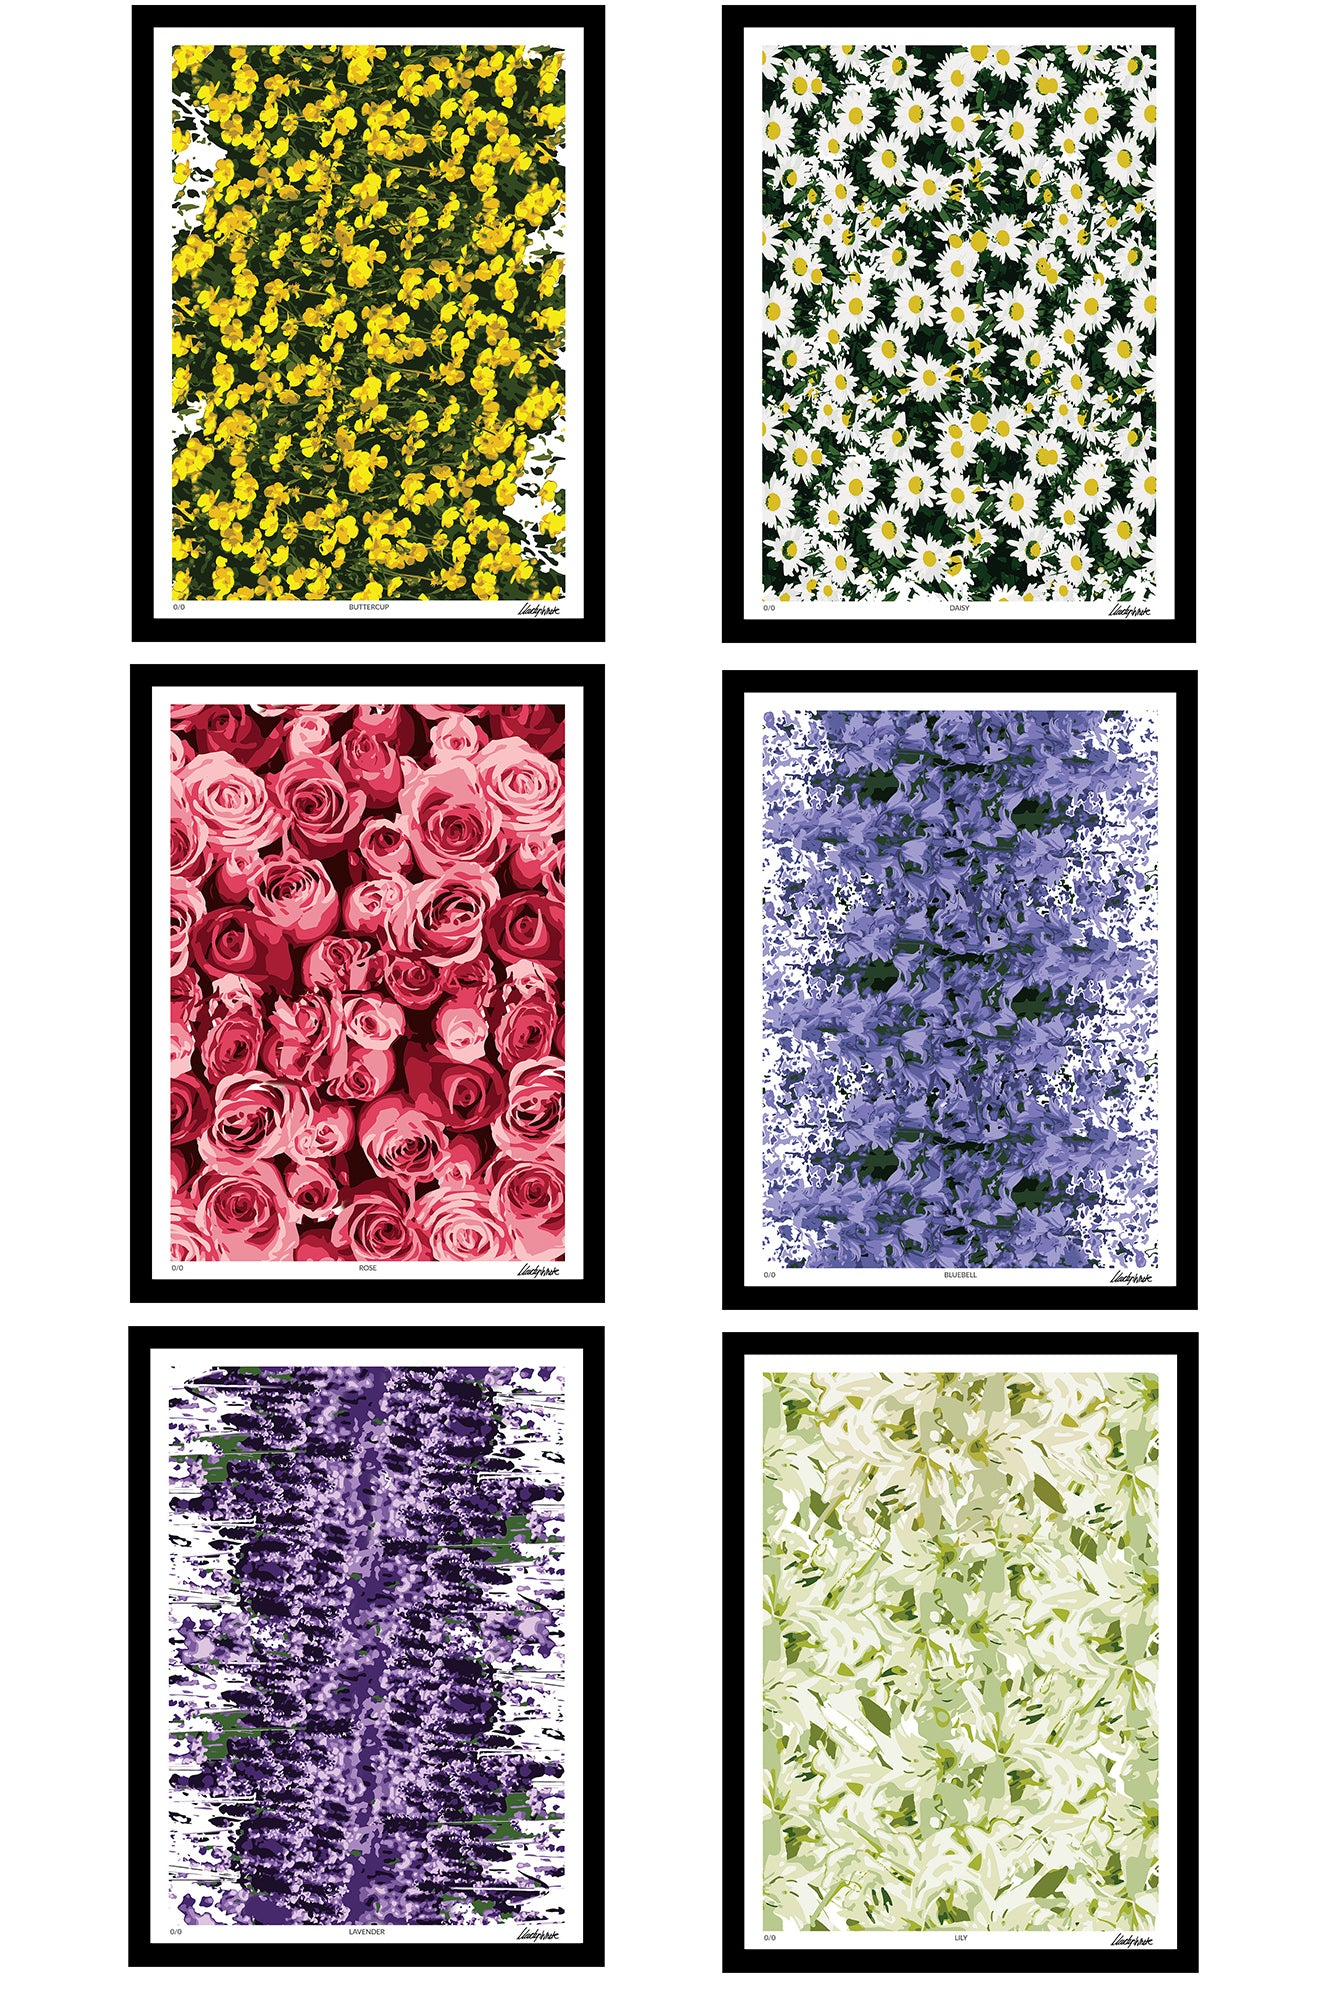 Floral collection of abstract art prints from Martyn White Designs